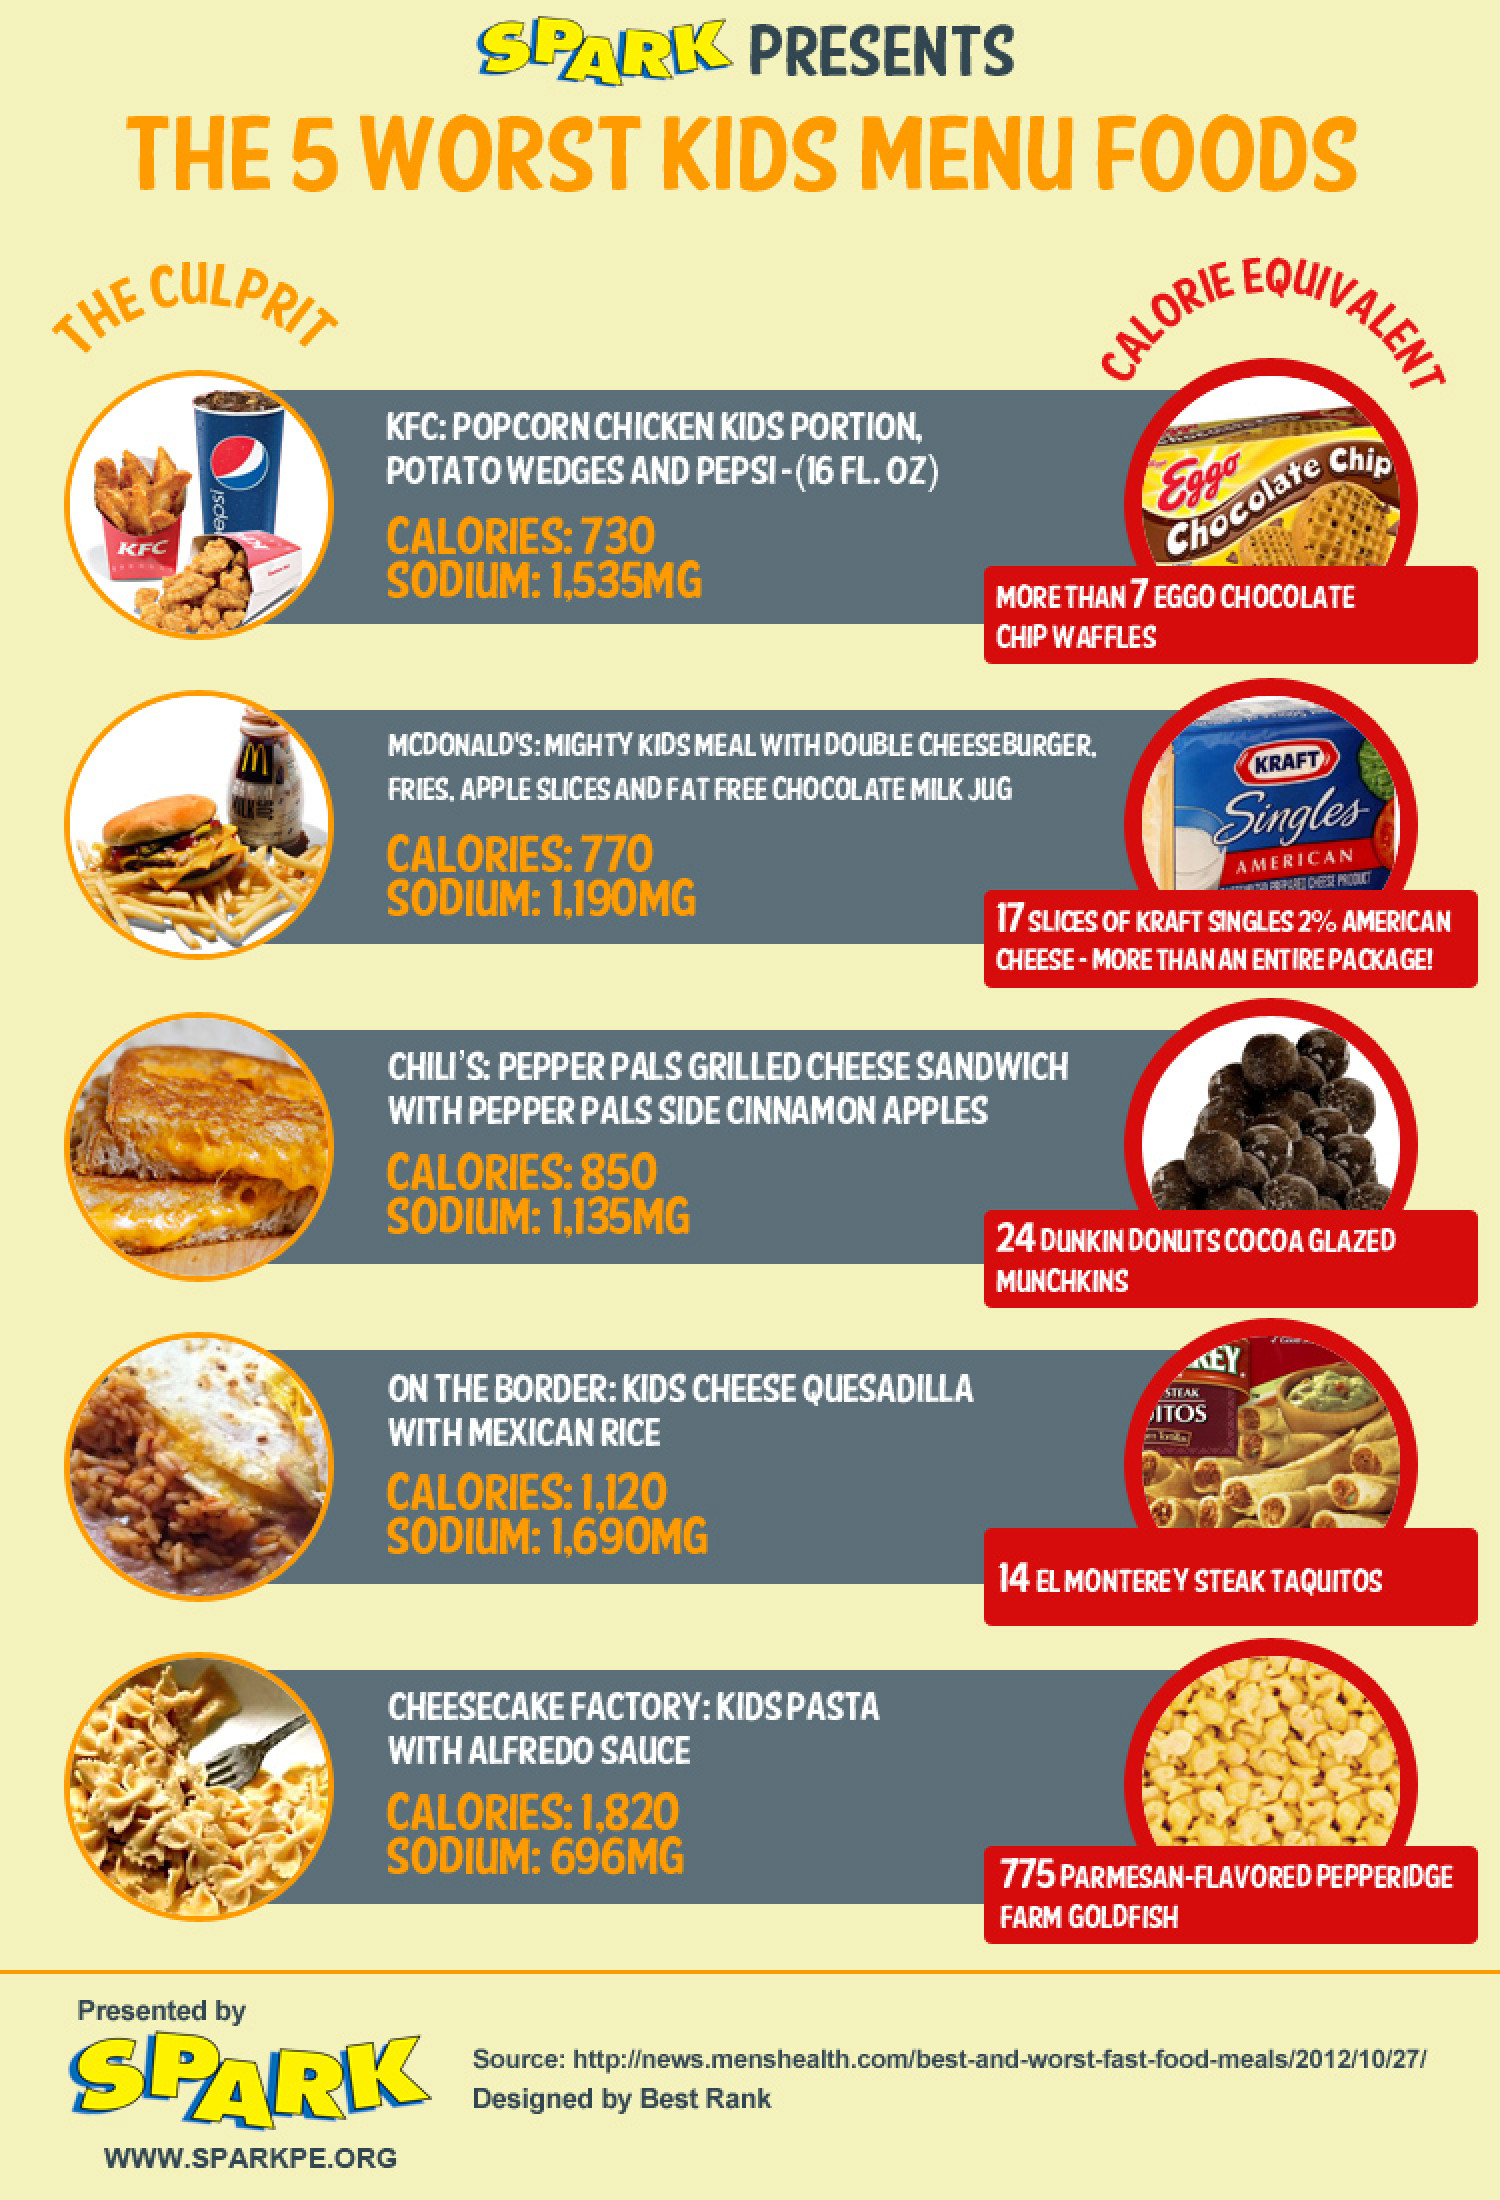 The 5 Worst Kids Menu Foods in America Infographic